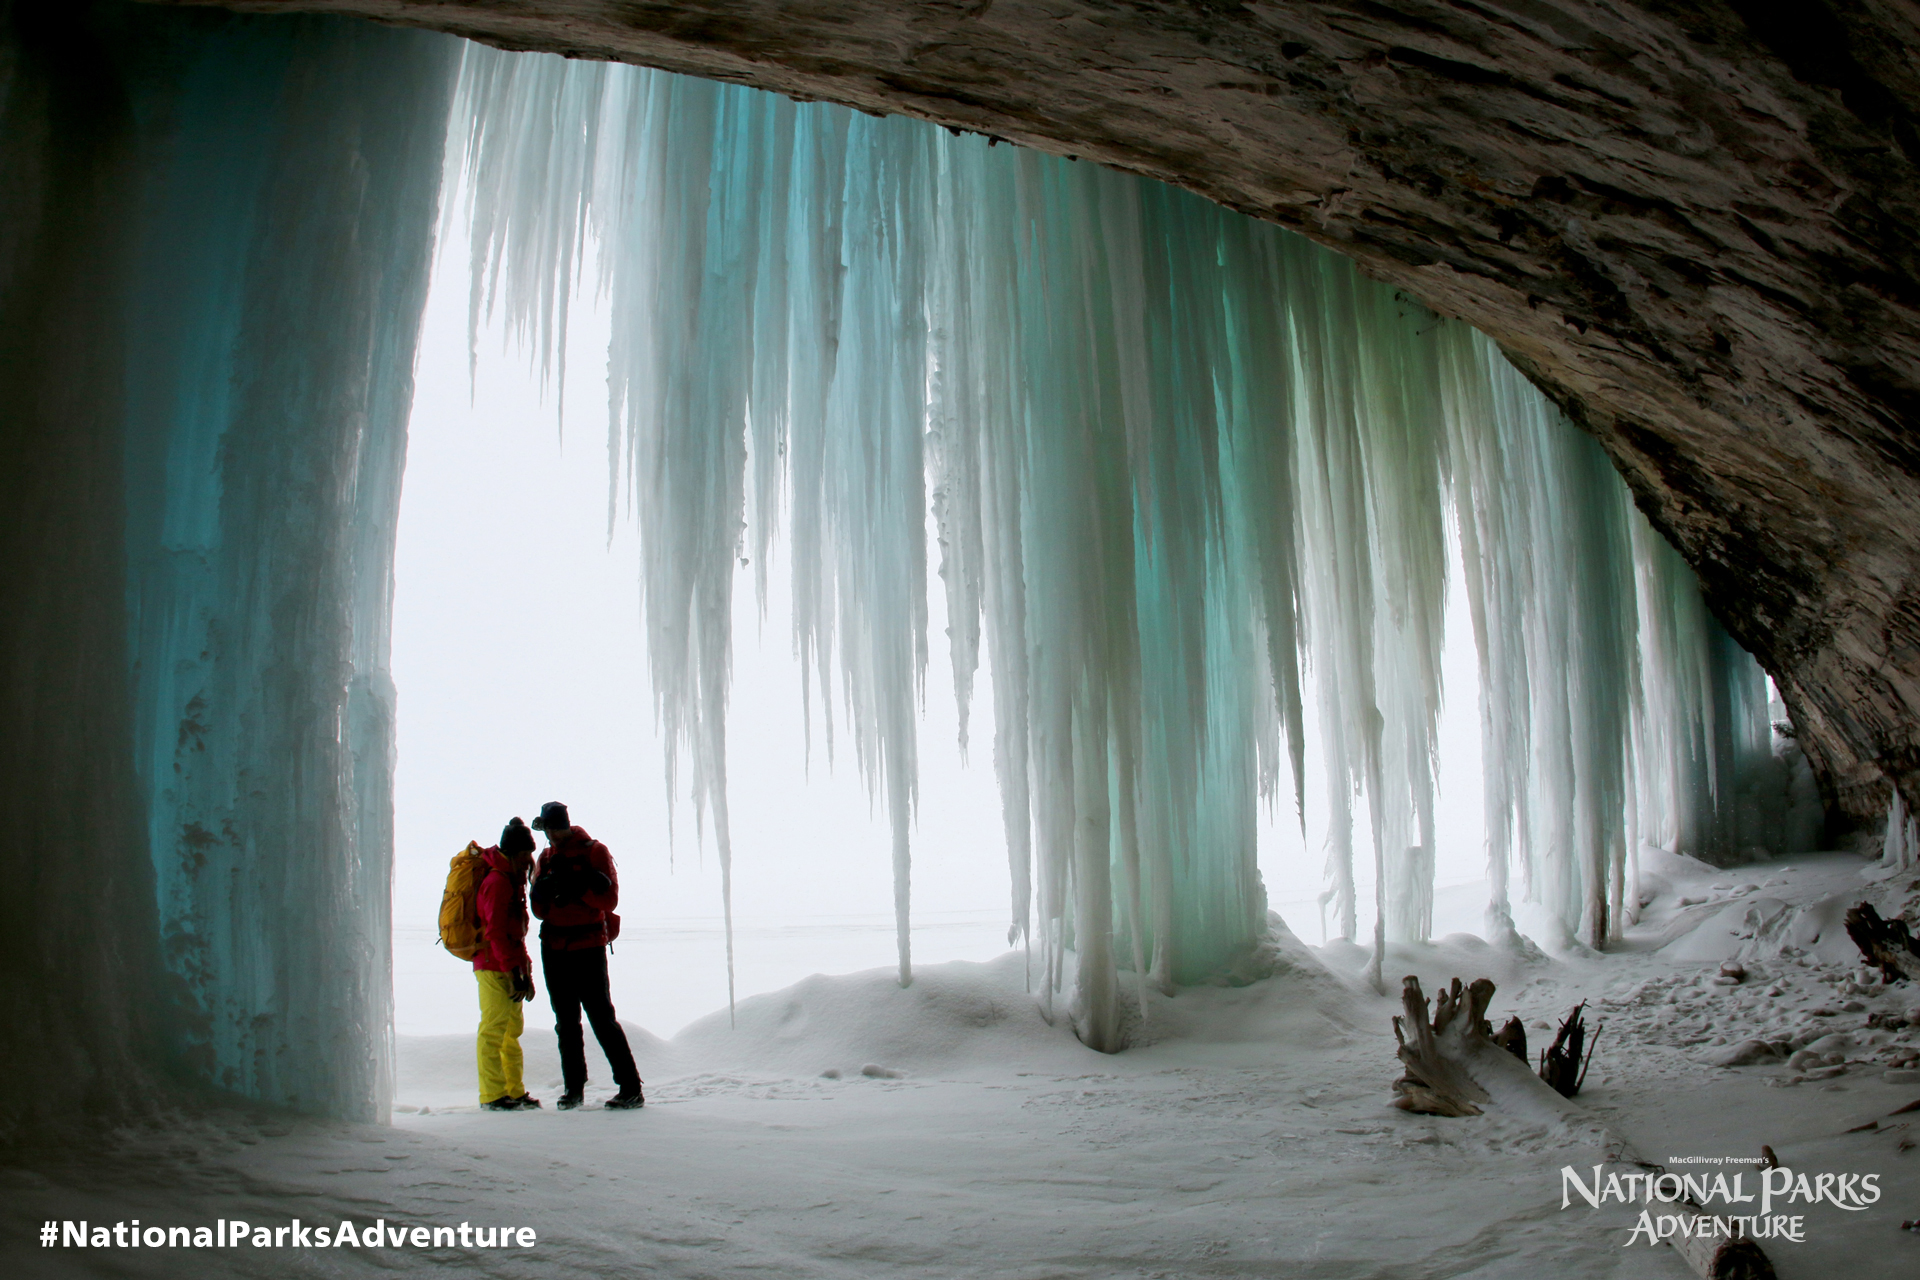 Max Lowe and Rachel Pohl explore a cave behind a frozen waterfall in Pictured Rocks National Lakeshore in Michigan. Courtesy of MacGillivray Freeman Films. Photographer: Barbara MacGillivray ©VisitTheUSA.com